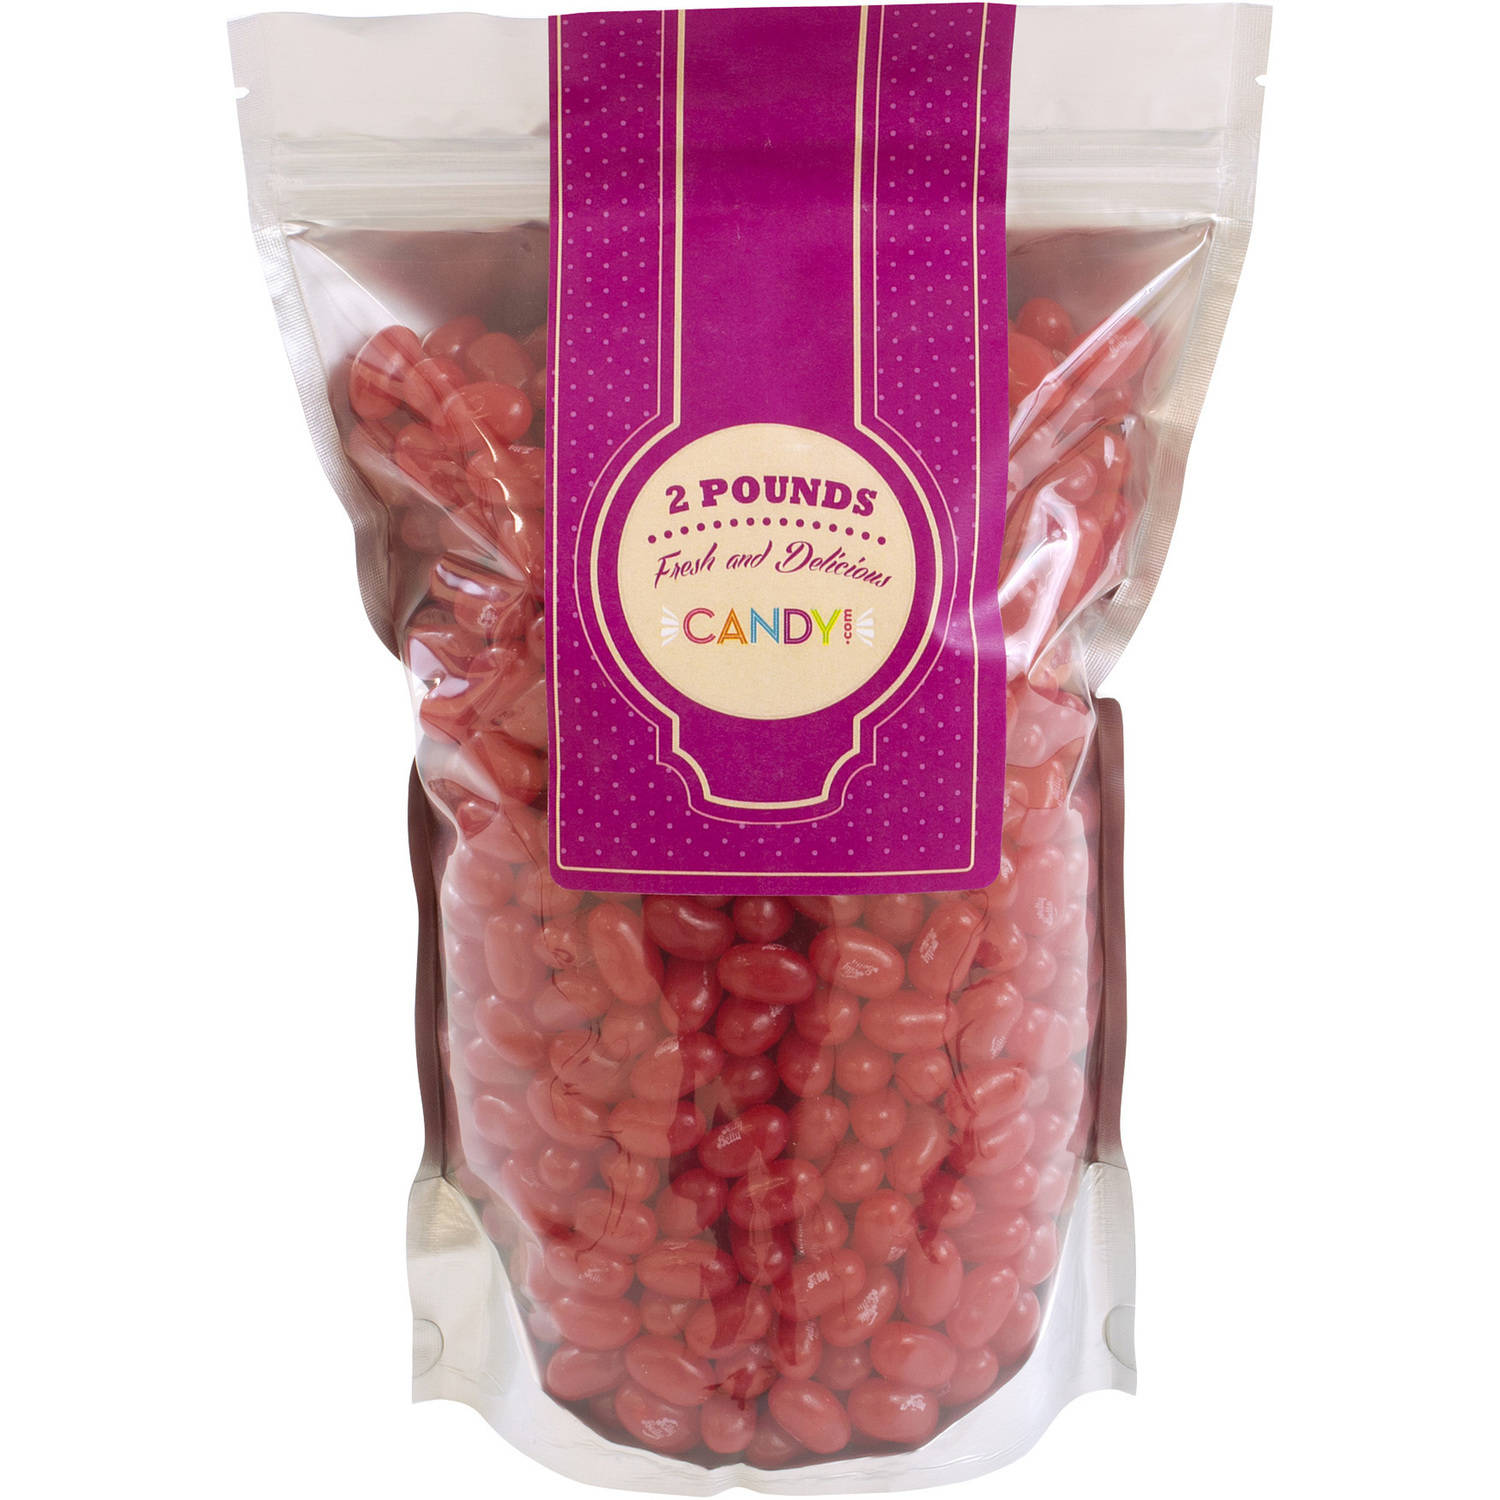 Jelly Belly Very Cherry Jelly Beans, 2 lbs